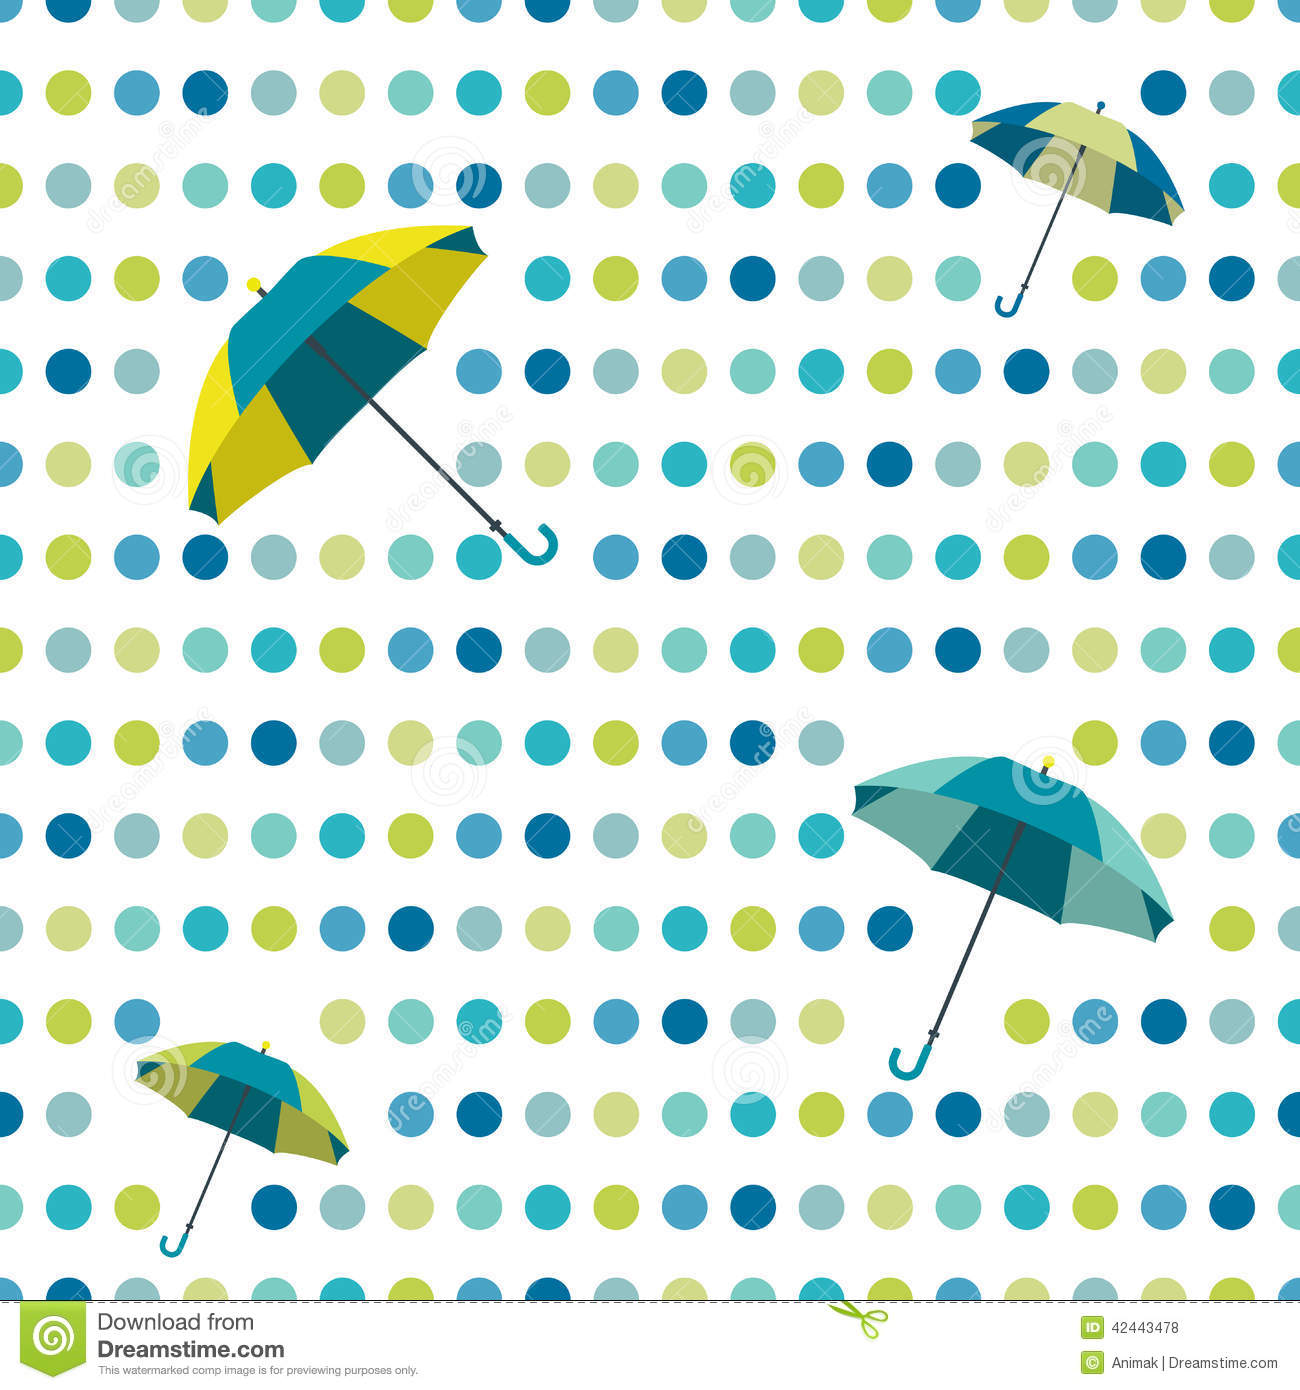 Polka Design Cartoon Vector